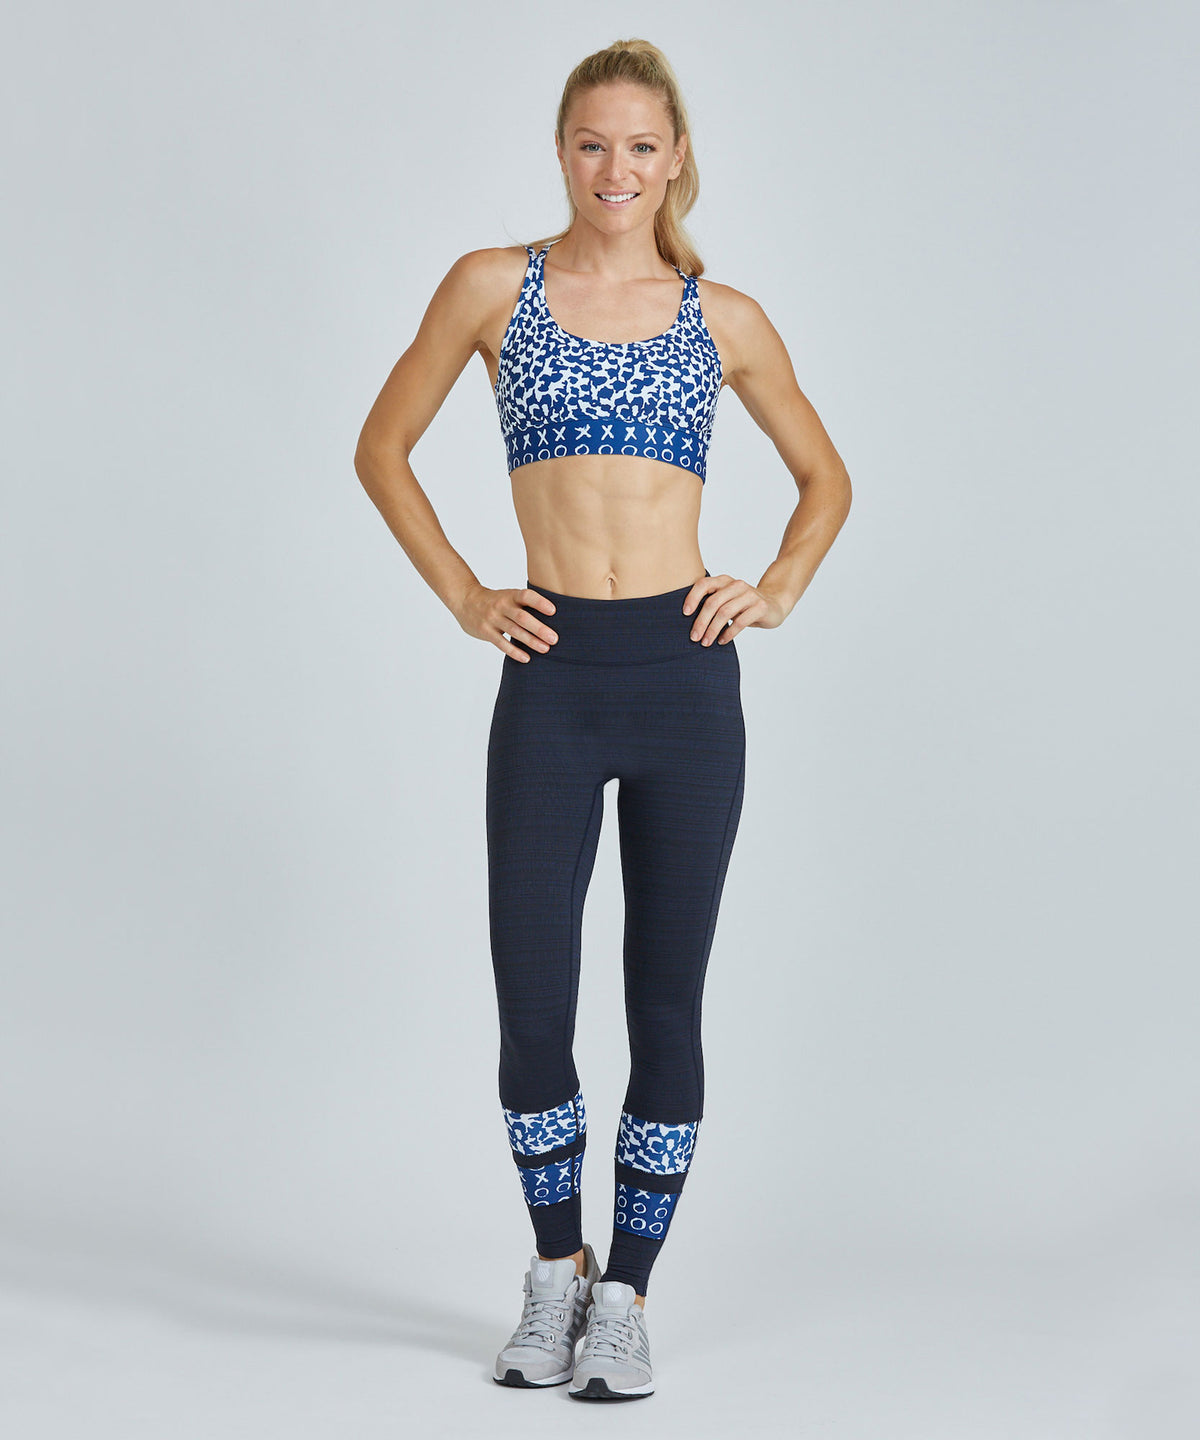 Full-Length Medley Legging - Navy Jacquard Navy Jacquard Full Length Medley Legging - Women's Yoga Legging by PRISMSPORT